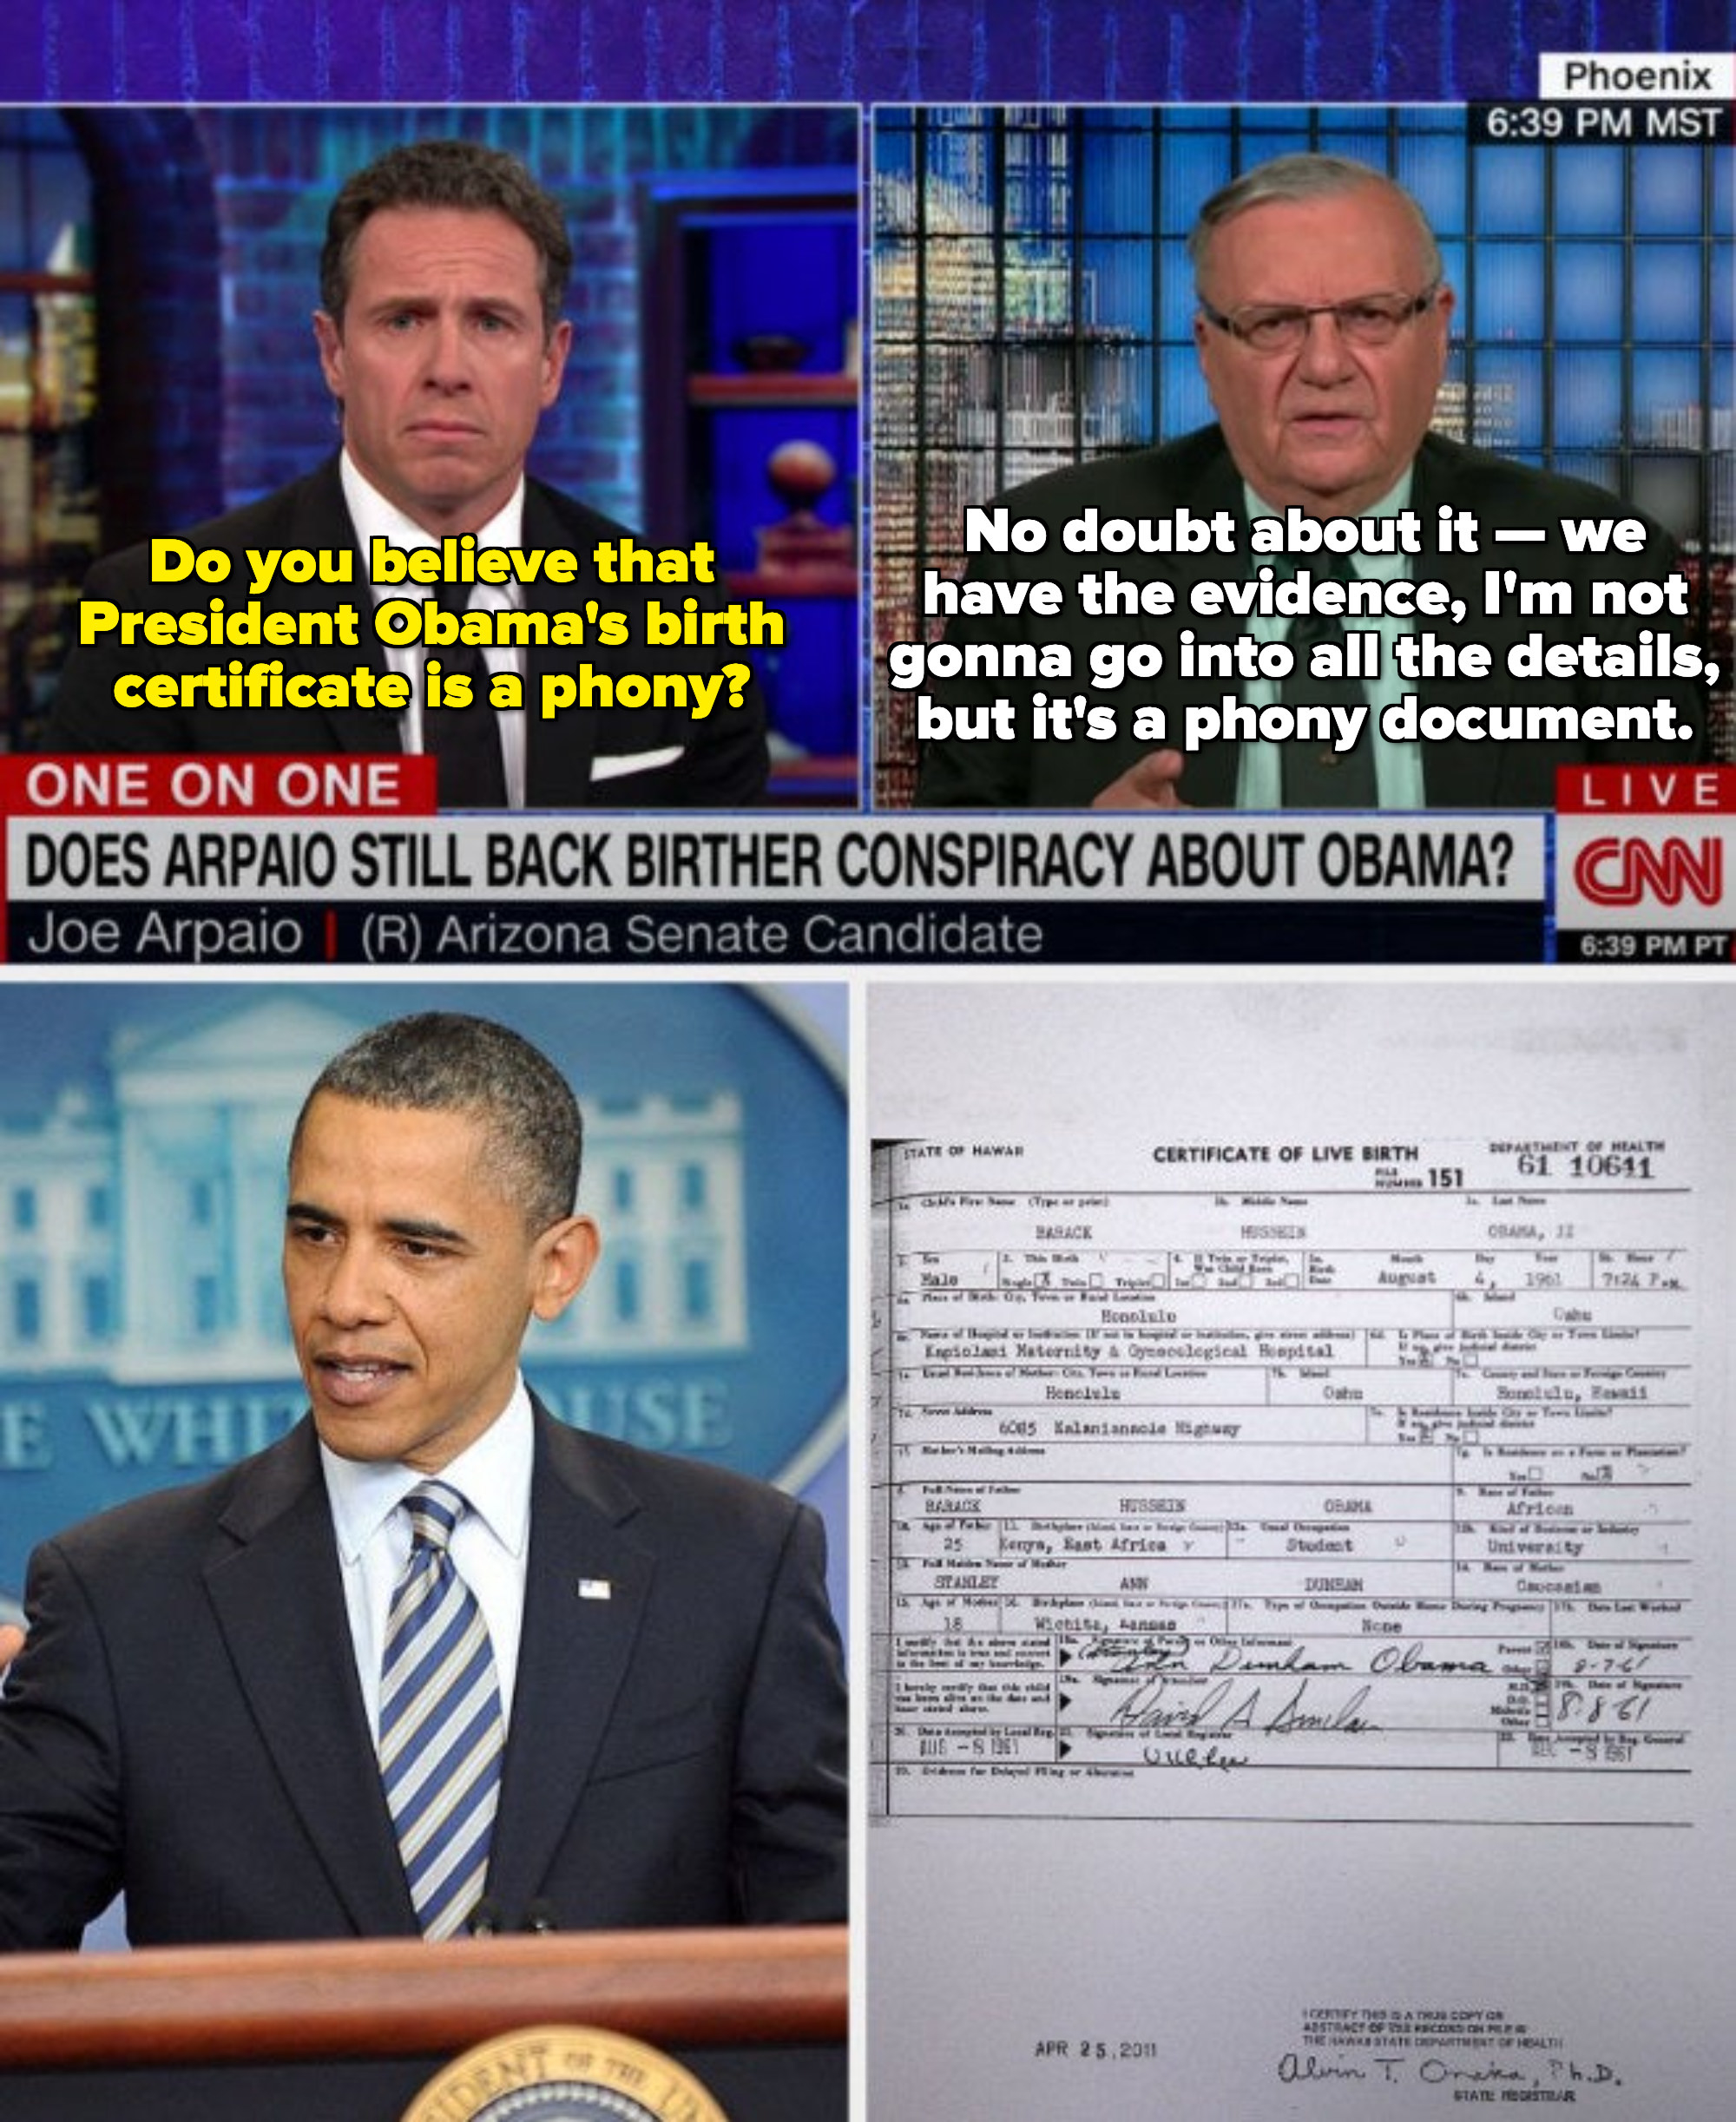 """Joe Arpaio telling CNN Obama's certificate was fake: """"We have the evidence, I'm not gonna go into all the details, but it's a phony document"""""""